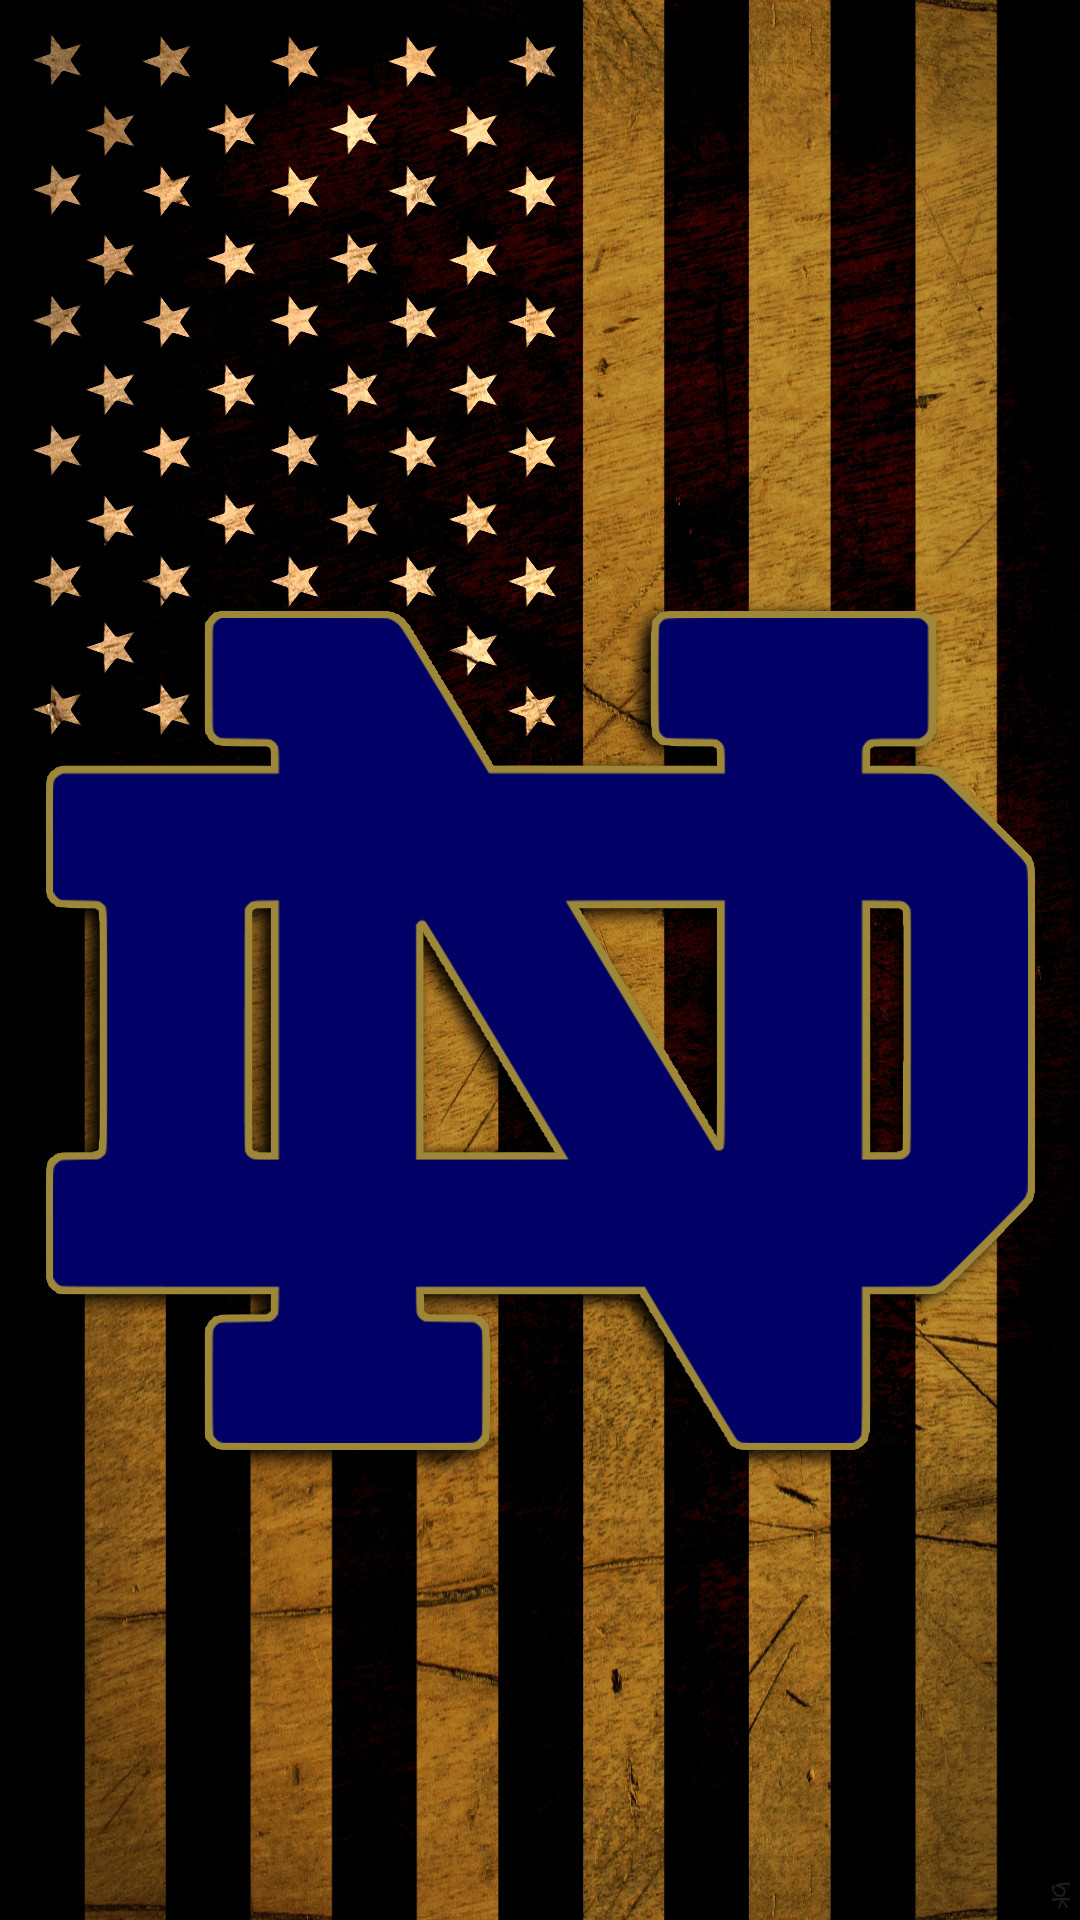 Notre dame fighting irish wallpapers wallpapertag - Notre dame football wallpaper ...